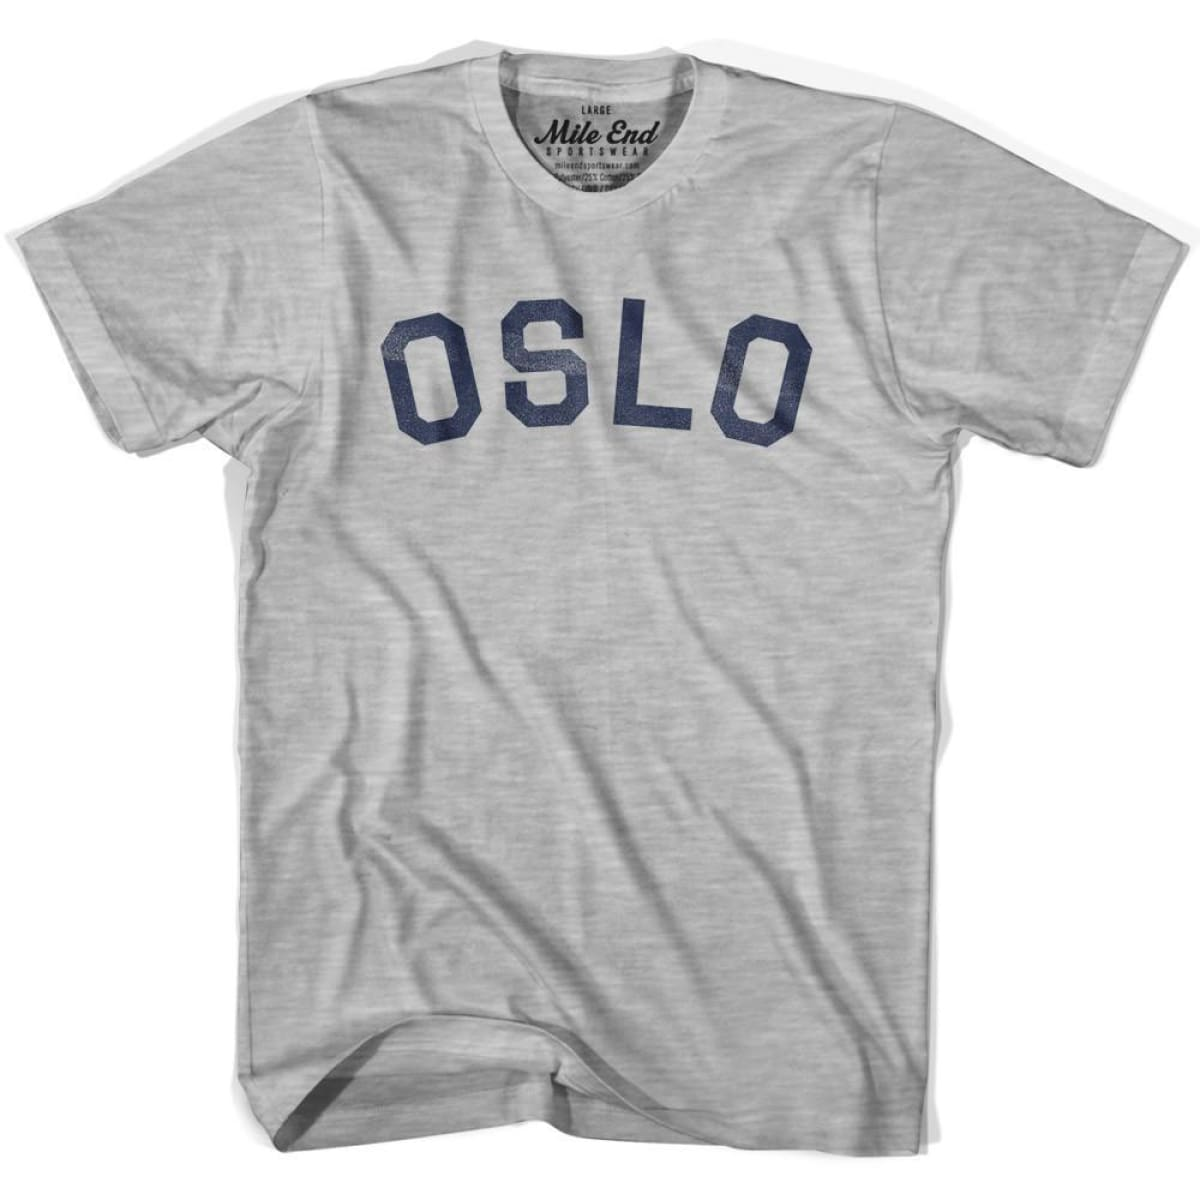 Oslo City Vintage T-shirt - Grey Heather / Youth Small - Mile End City